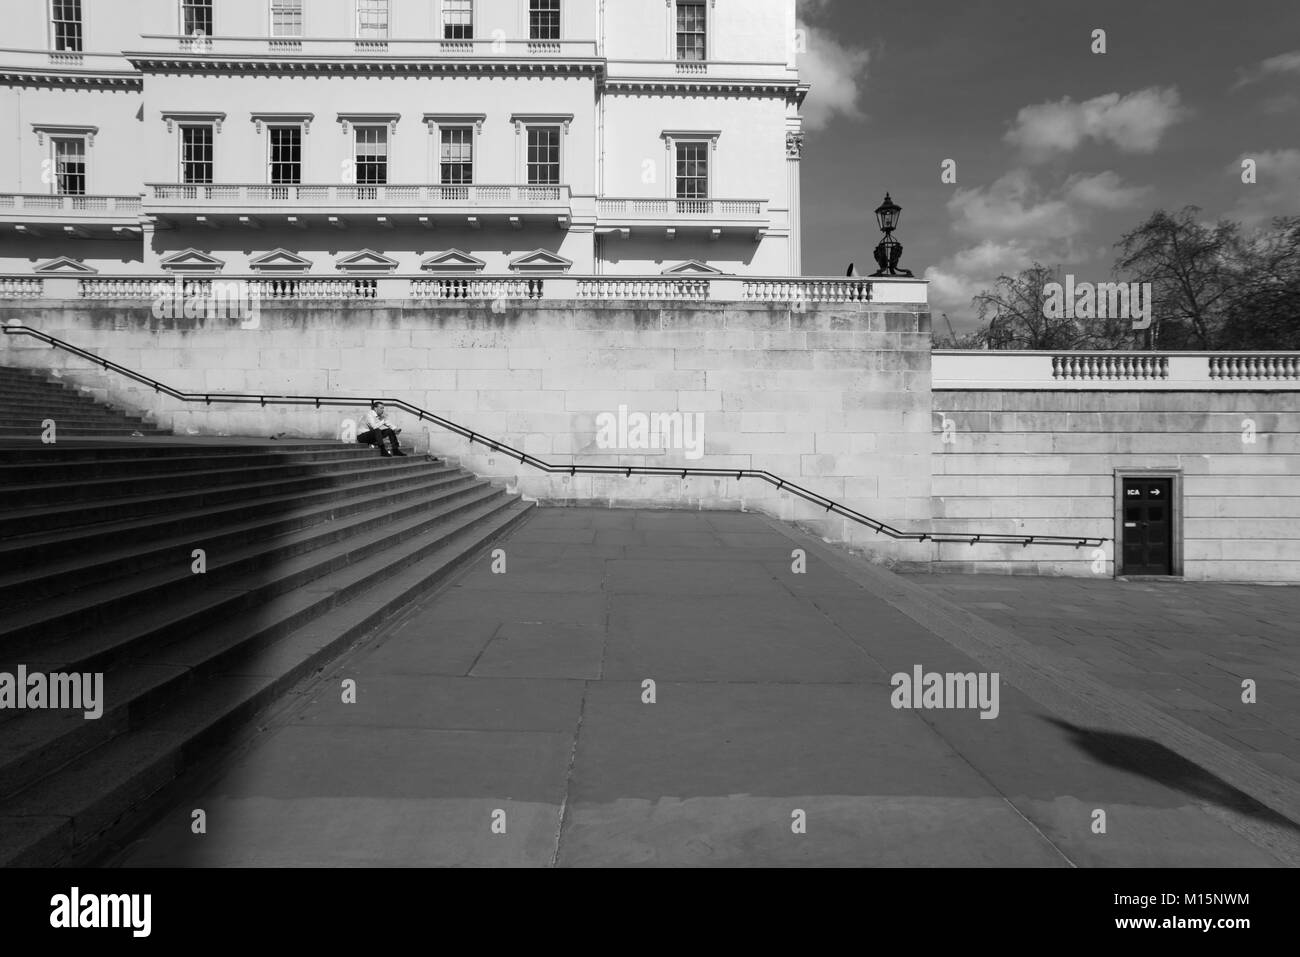 London, Duke of York Steps leading from The Mall to Waterloo Place between Carlton House Terraces. Man sits quietly - Stock Image